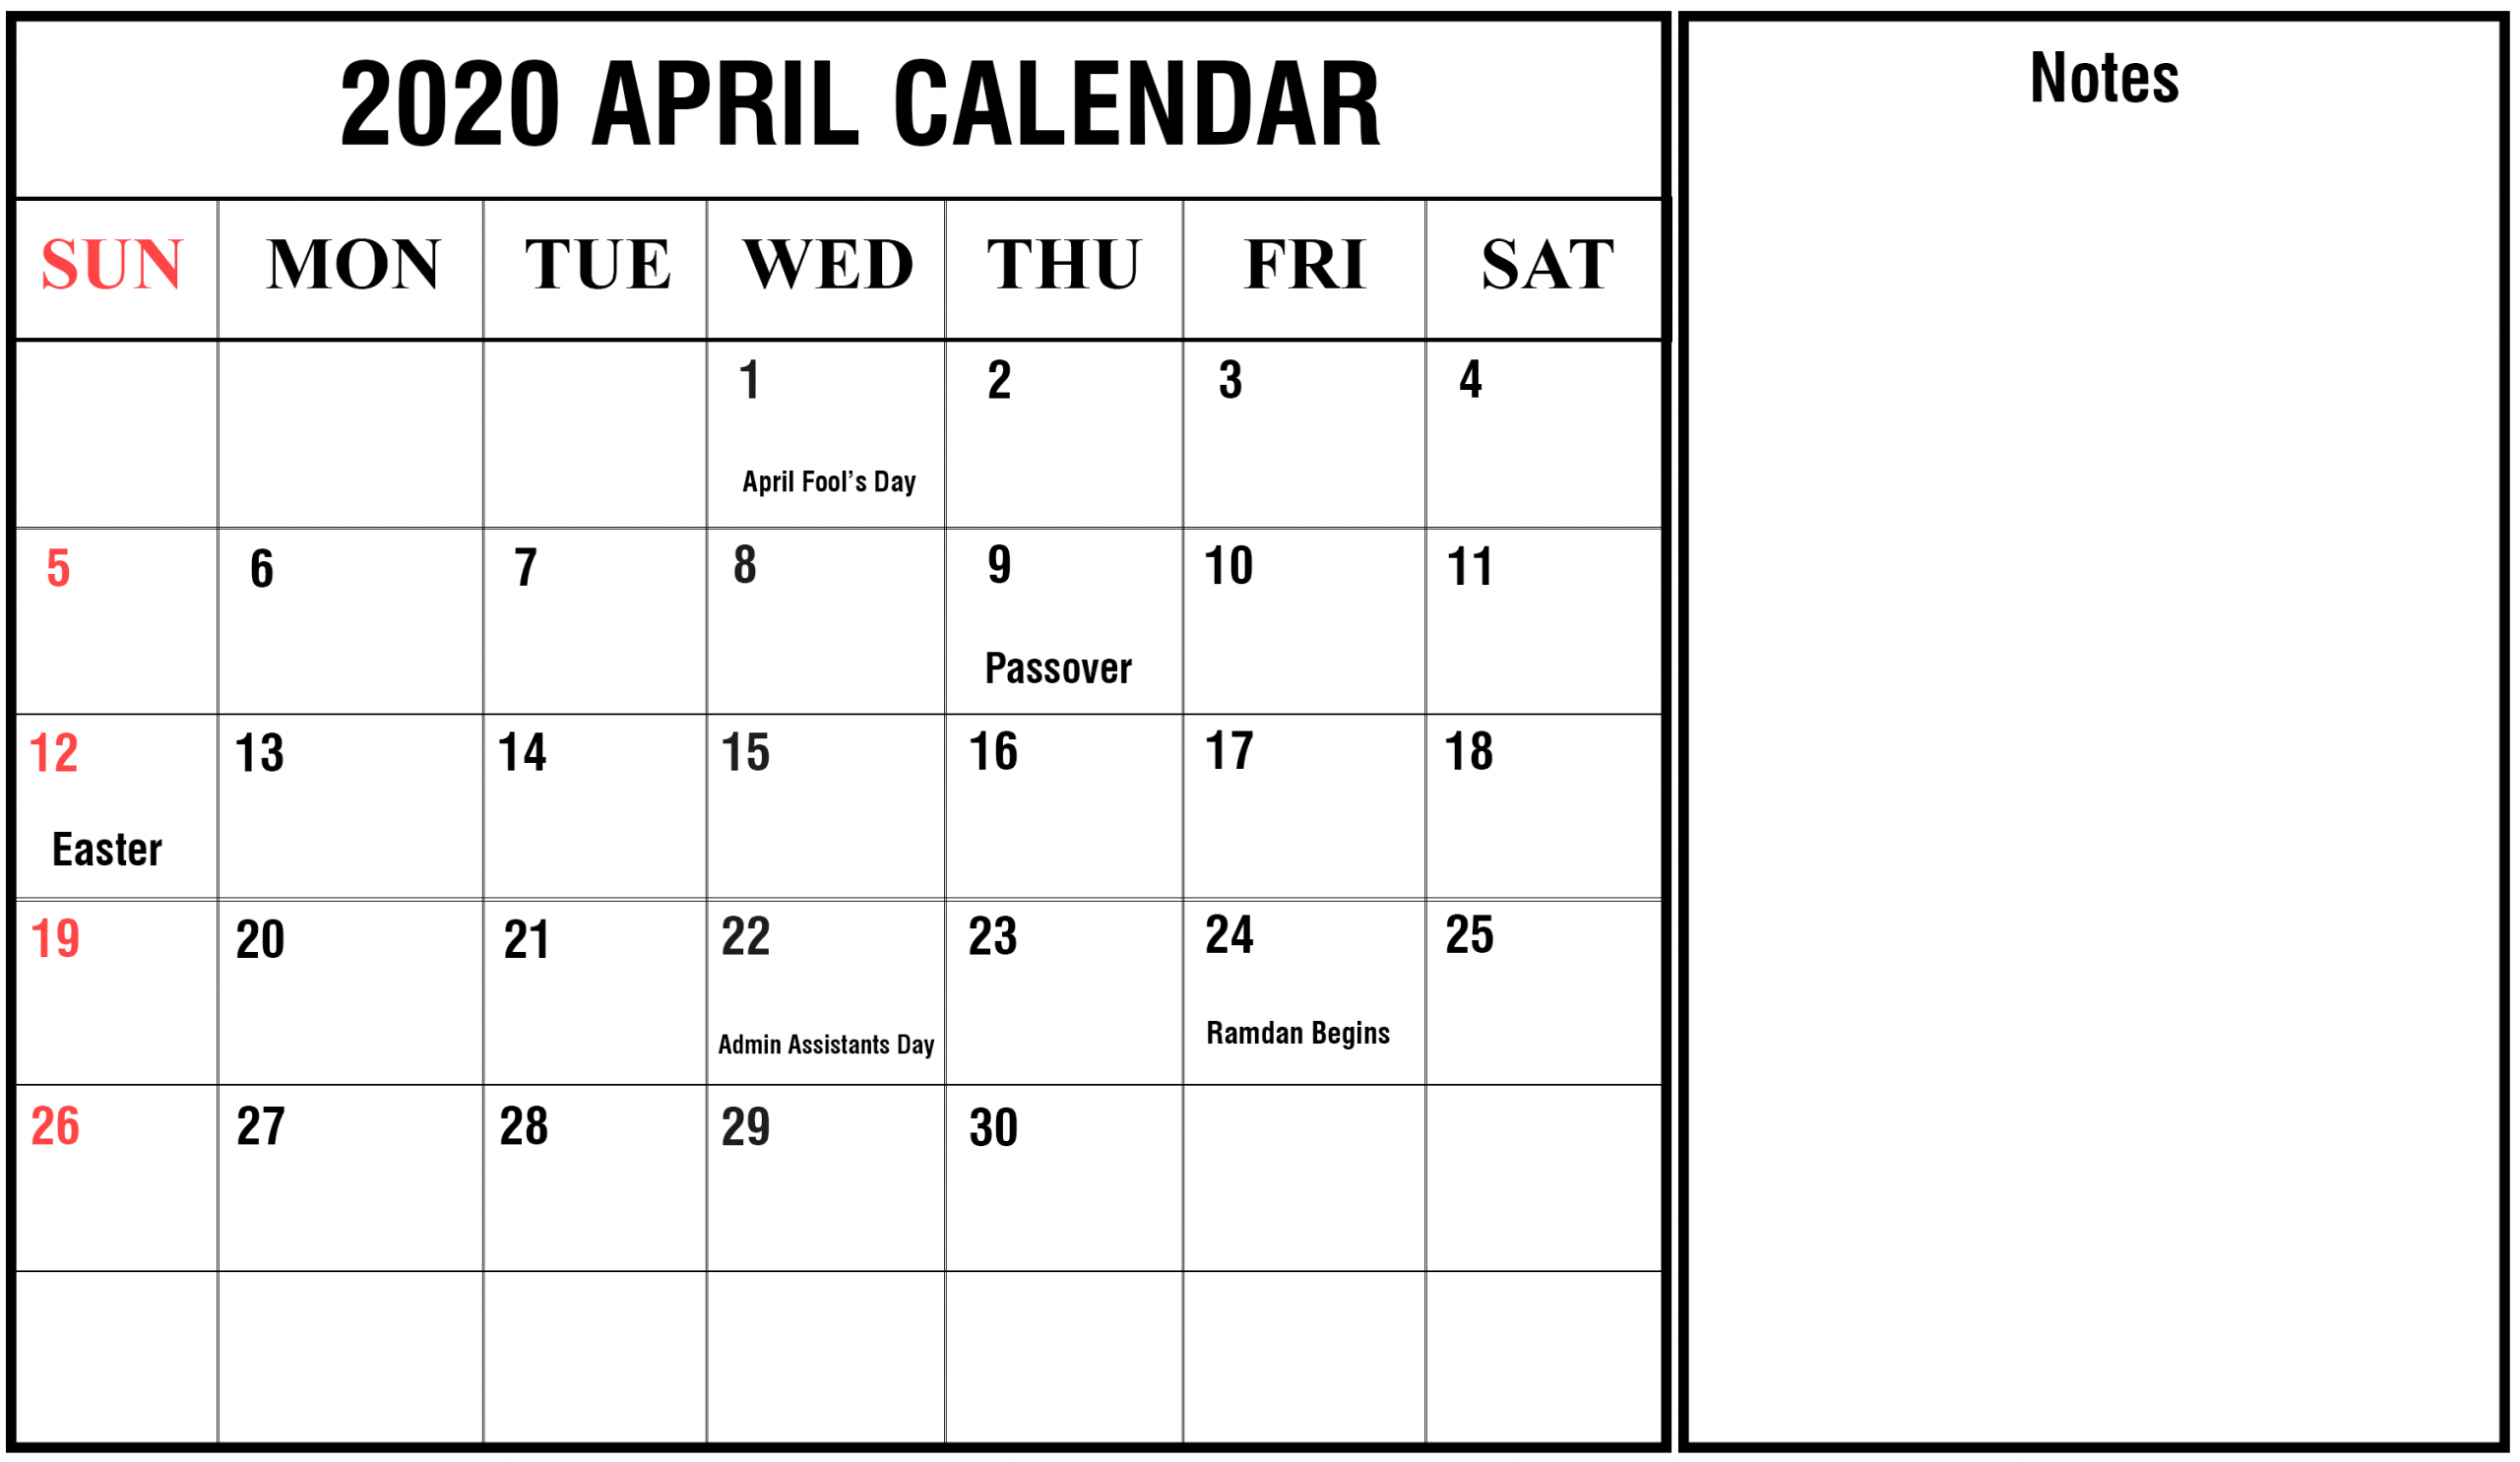 April 2020 Calendar Holidays Template, #april #calendar